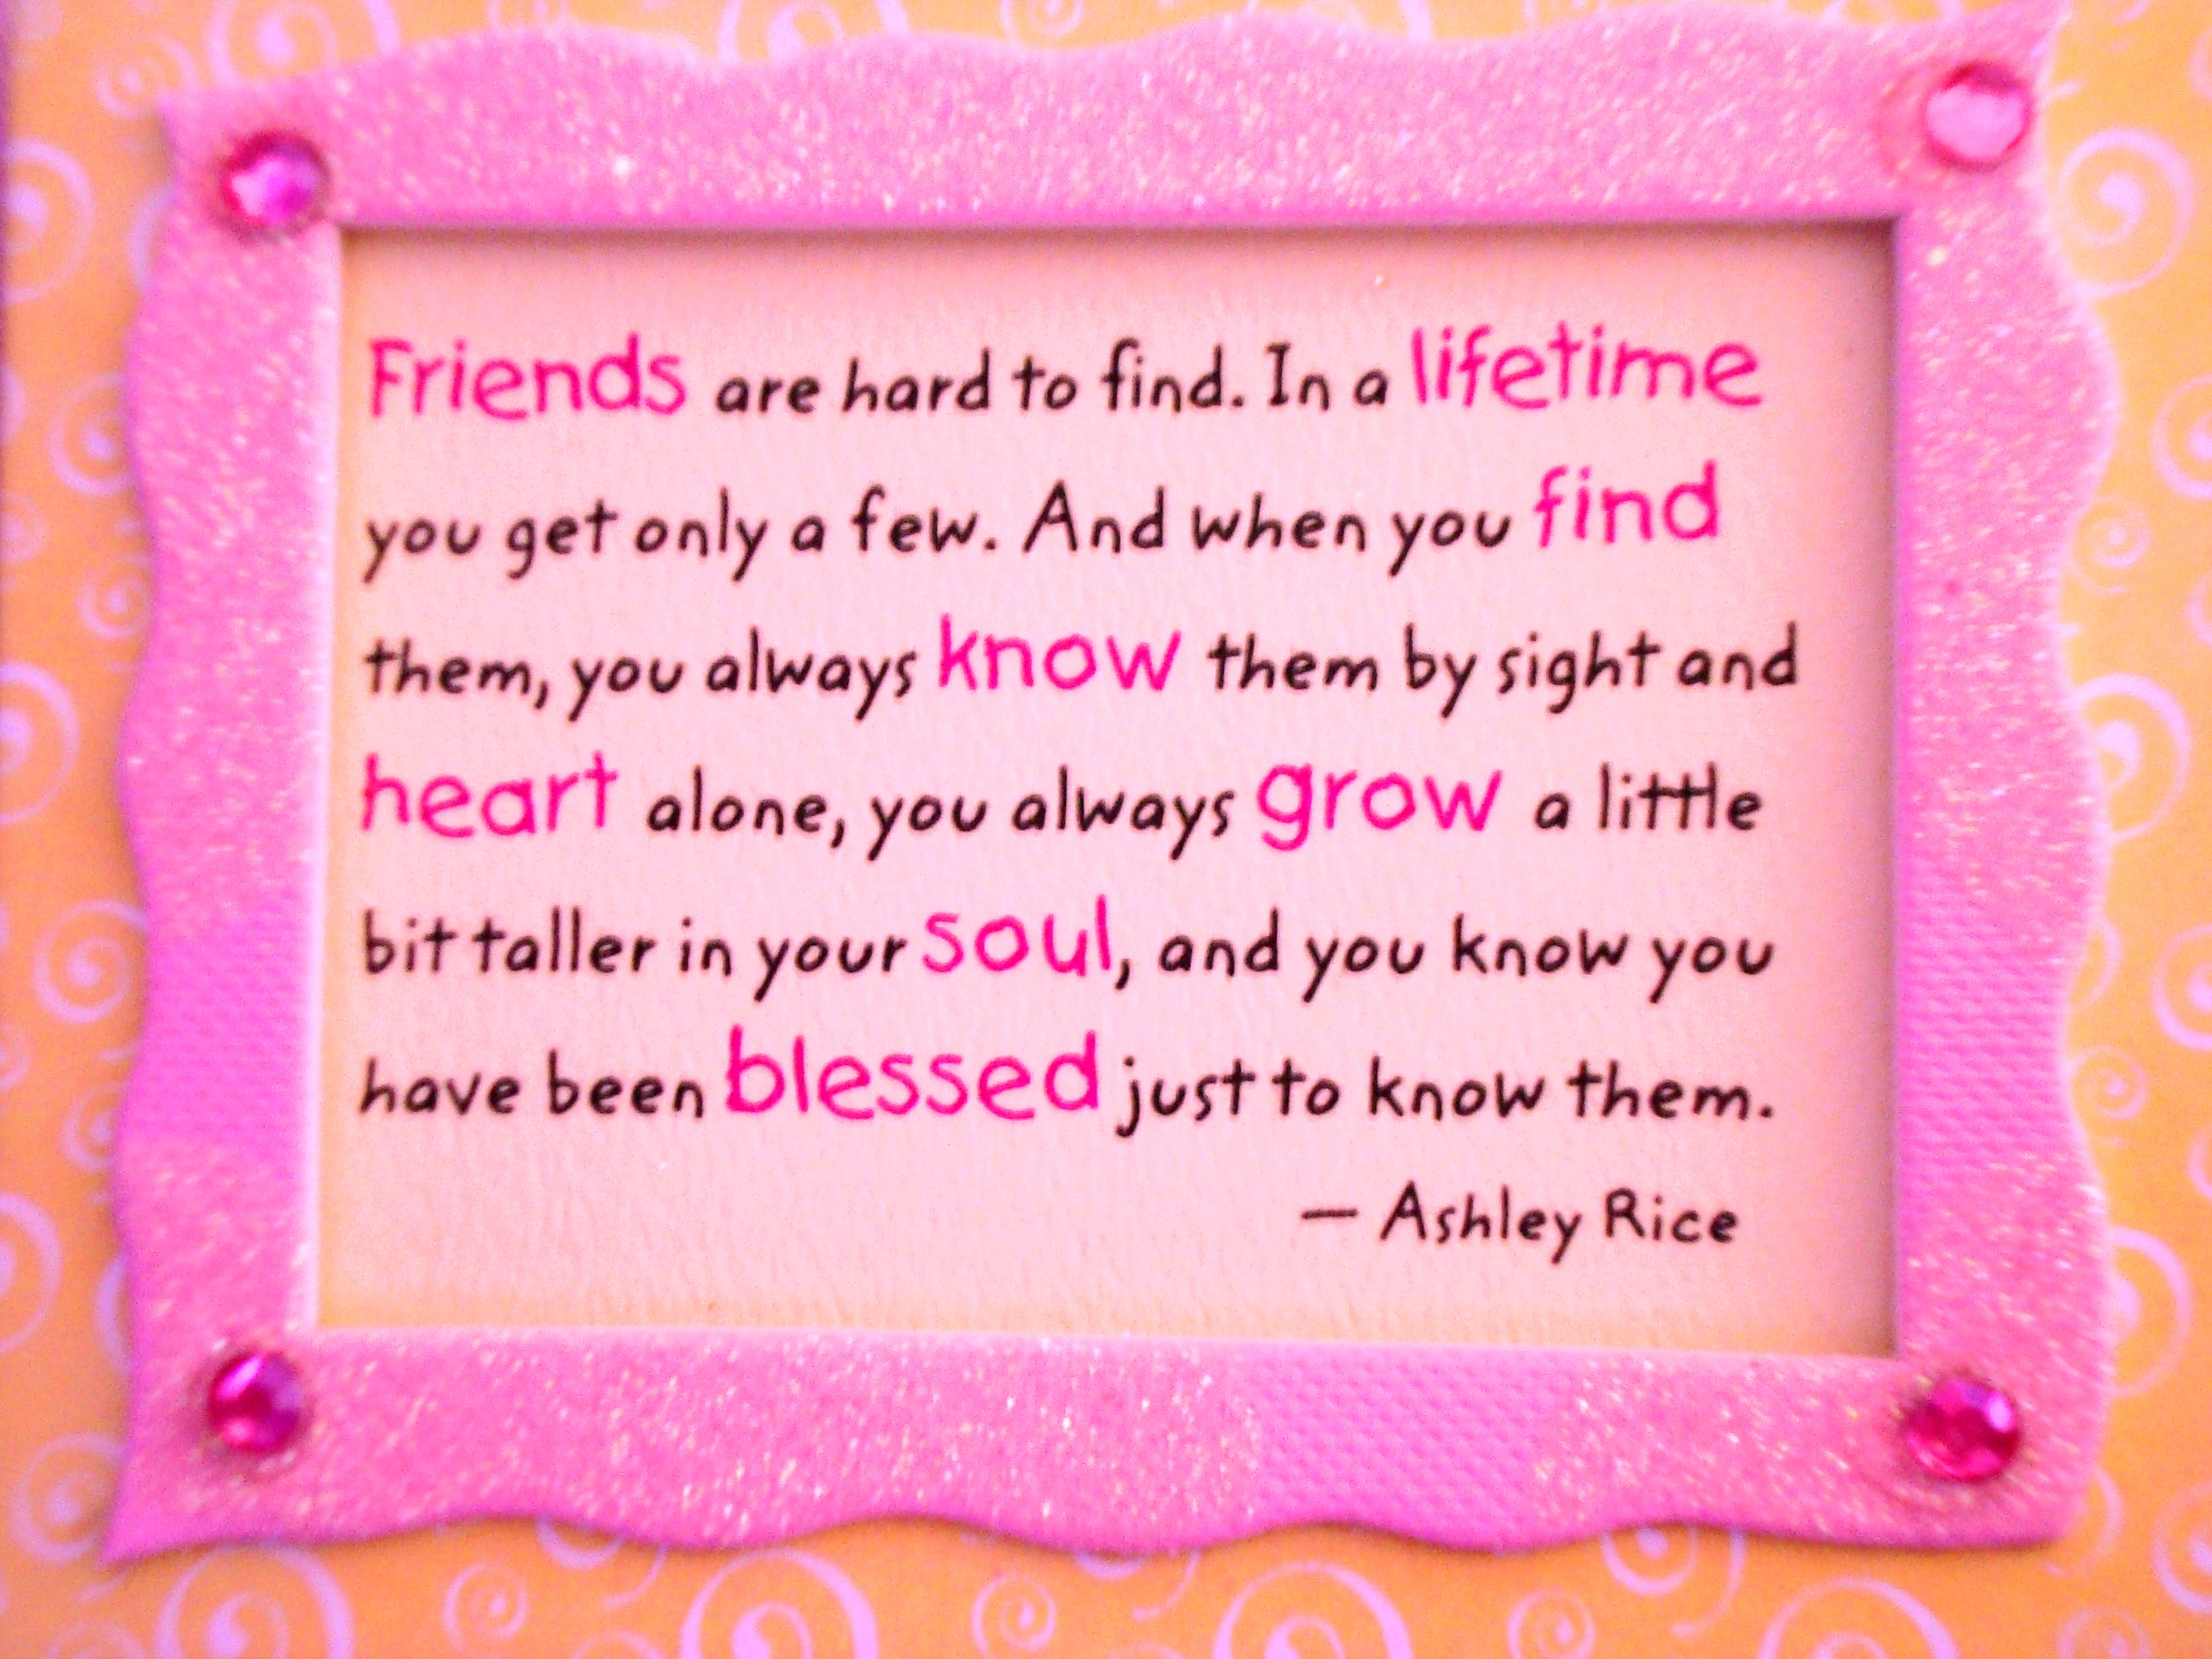 Quotes-on-friendship-pics-7.jpg